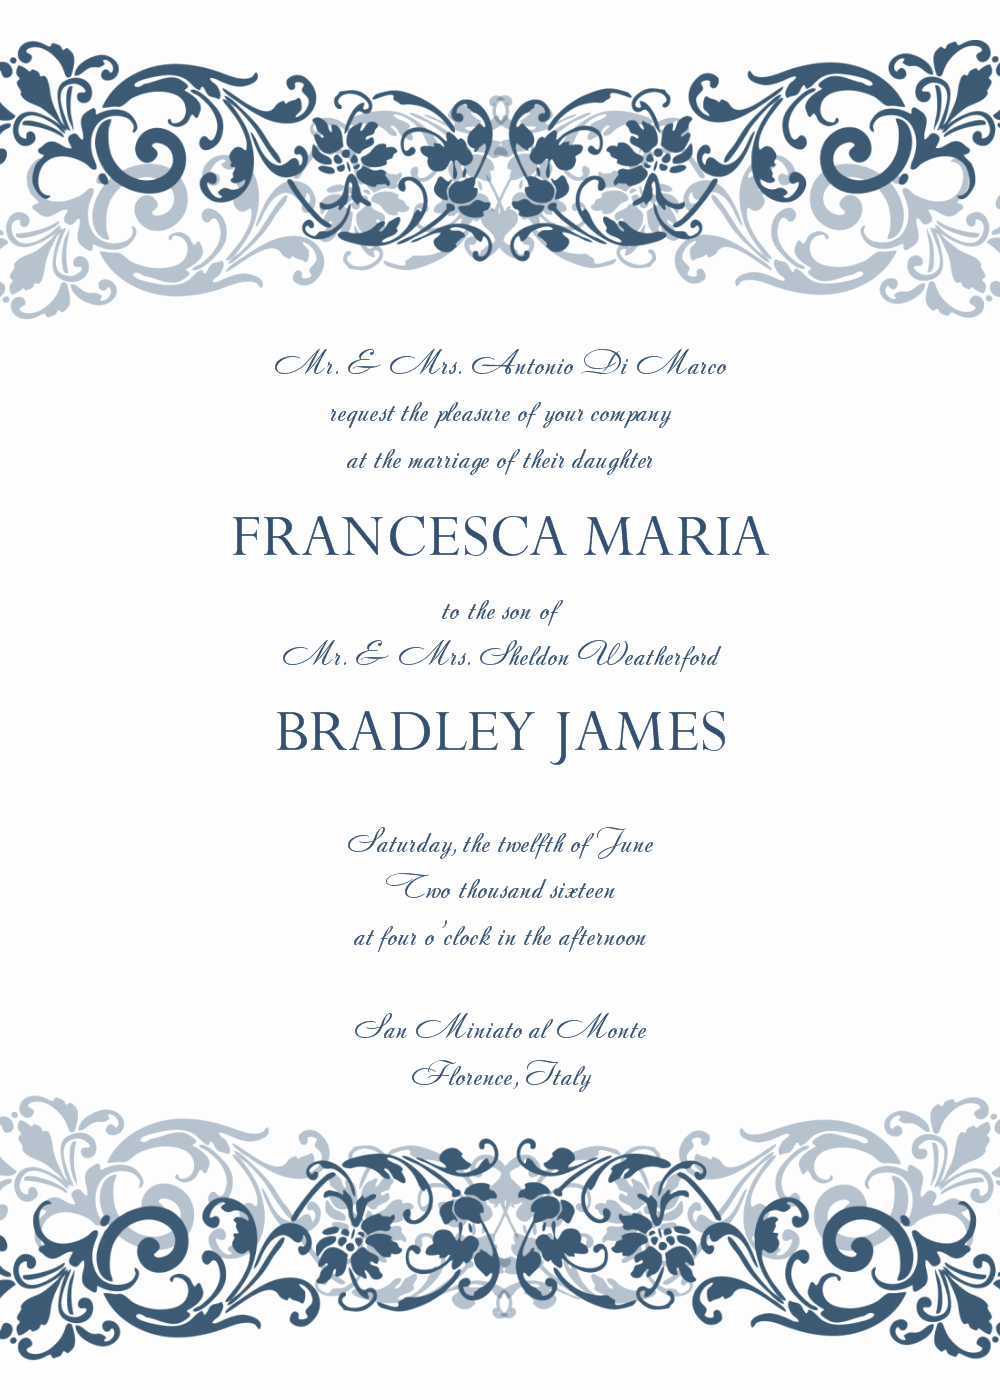 Wedding Invitations Templates Word Free Best Of 8 Free Wedding Invitation Templates Excel Pdf formats